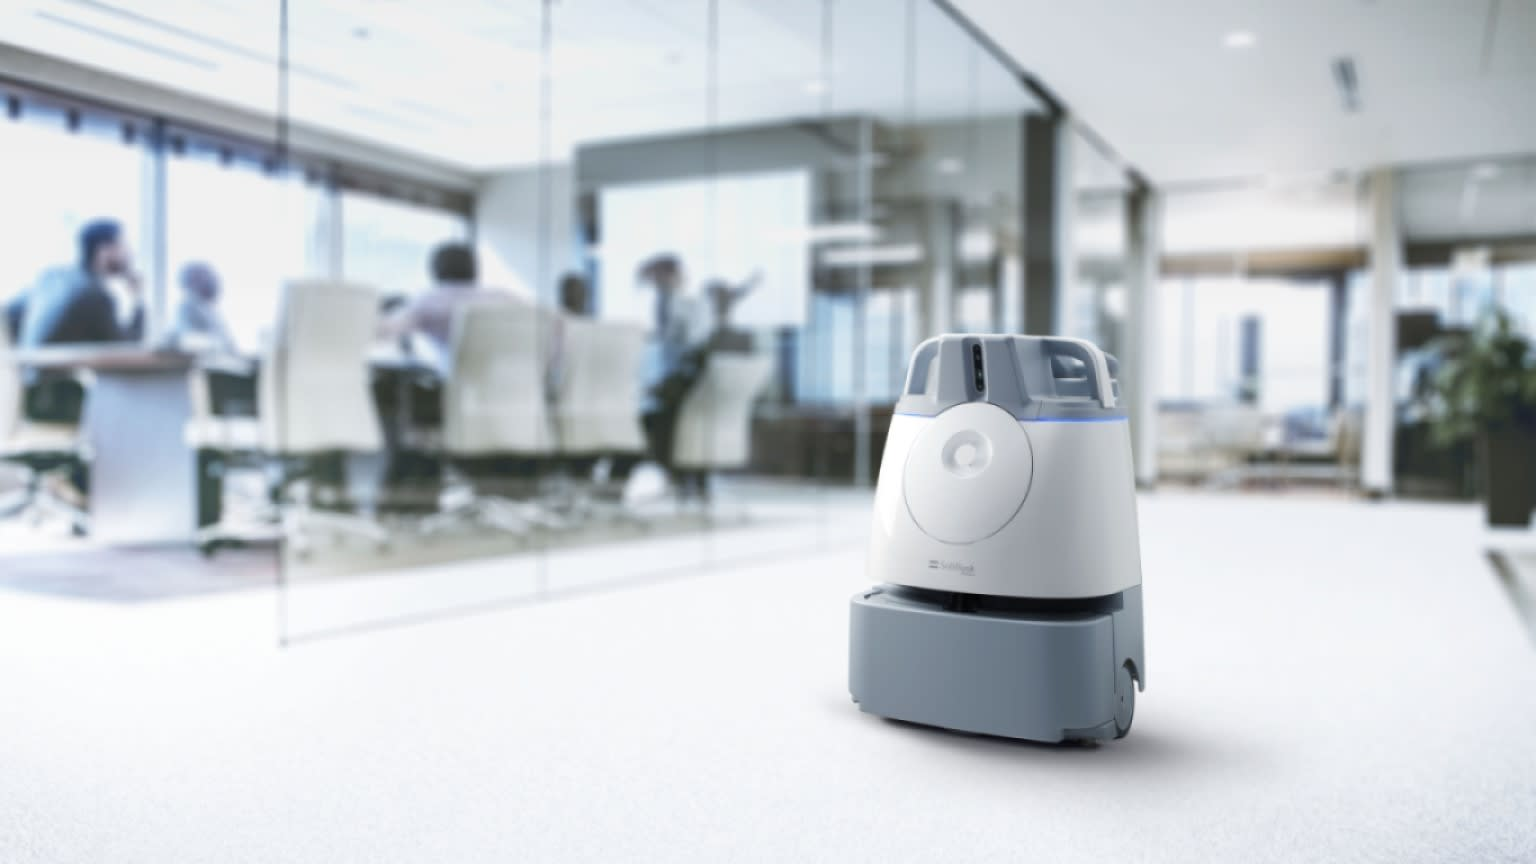 Cobotics Empower Your Cleaning Business